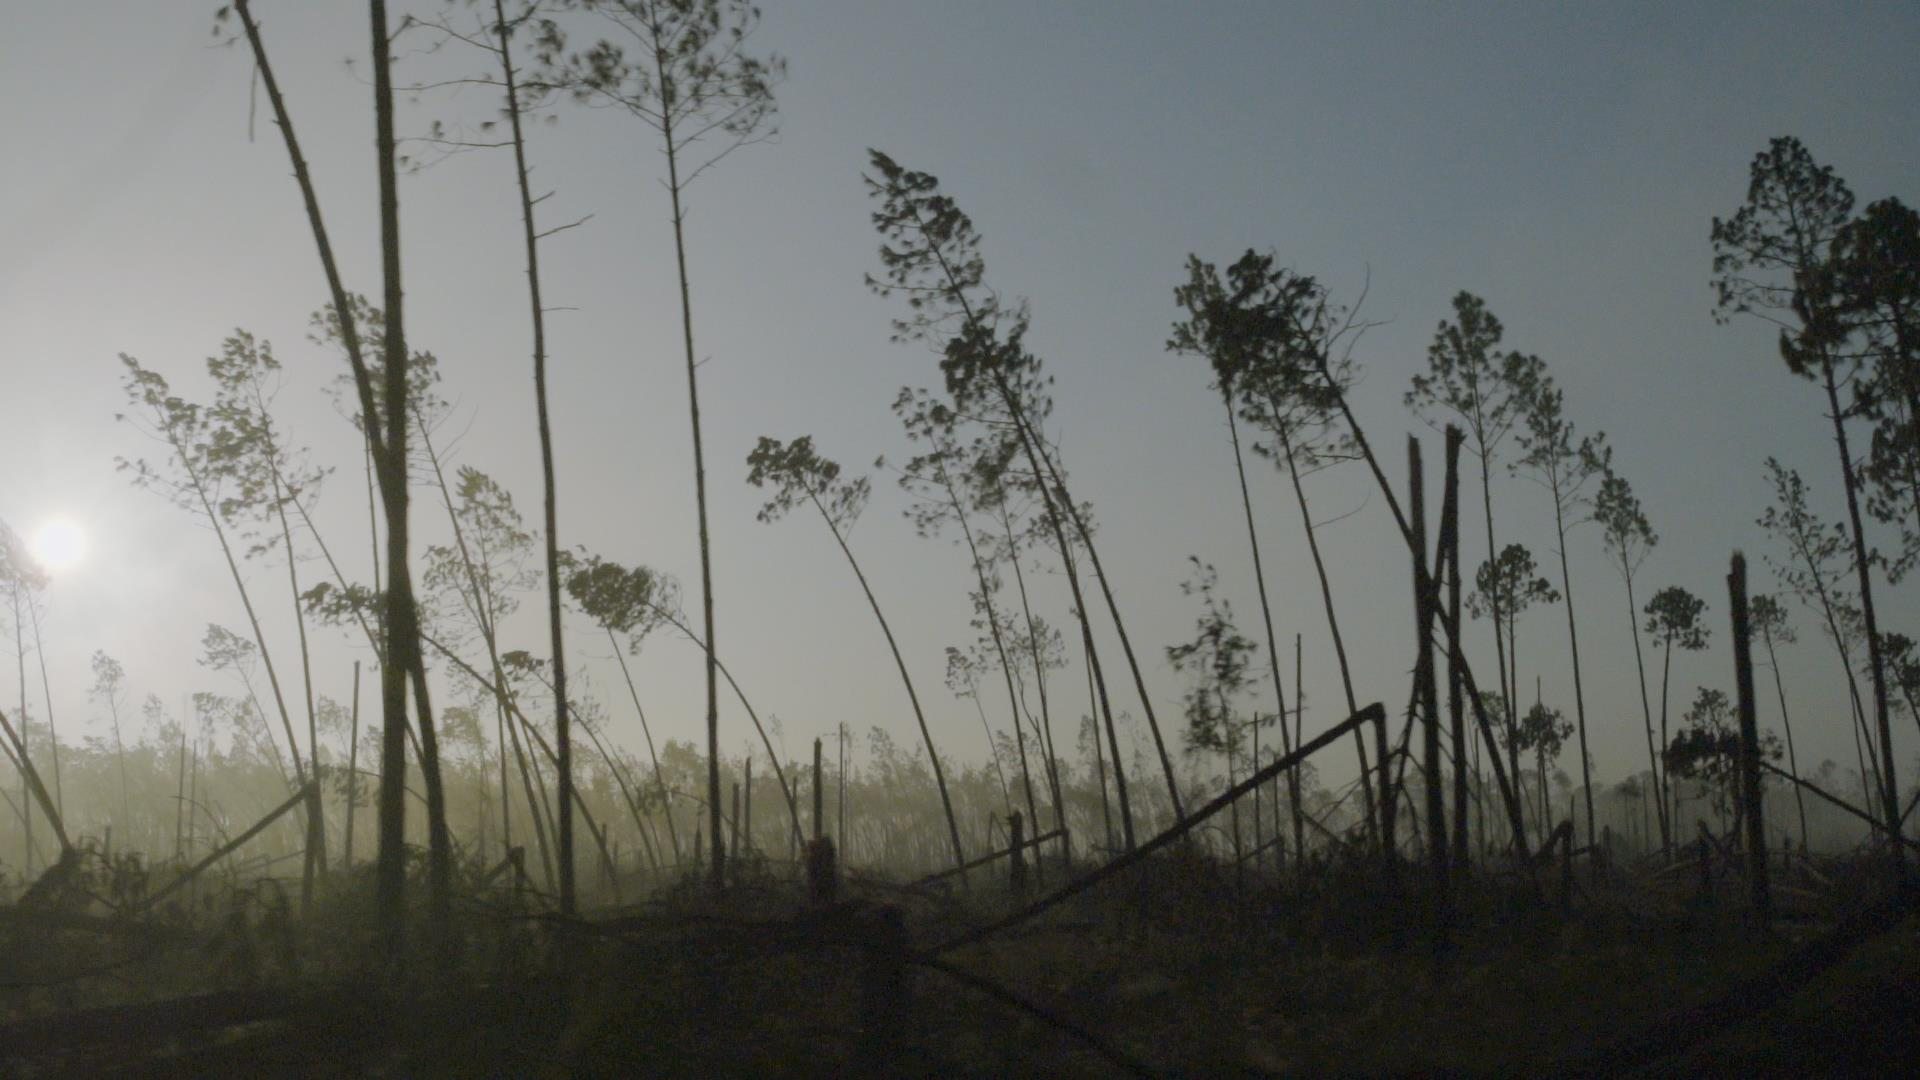 Hurricane-hit Florida Panhandle awaits aid as wildfire risk looms